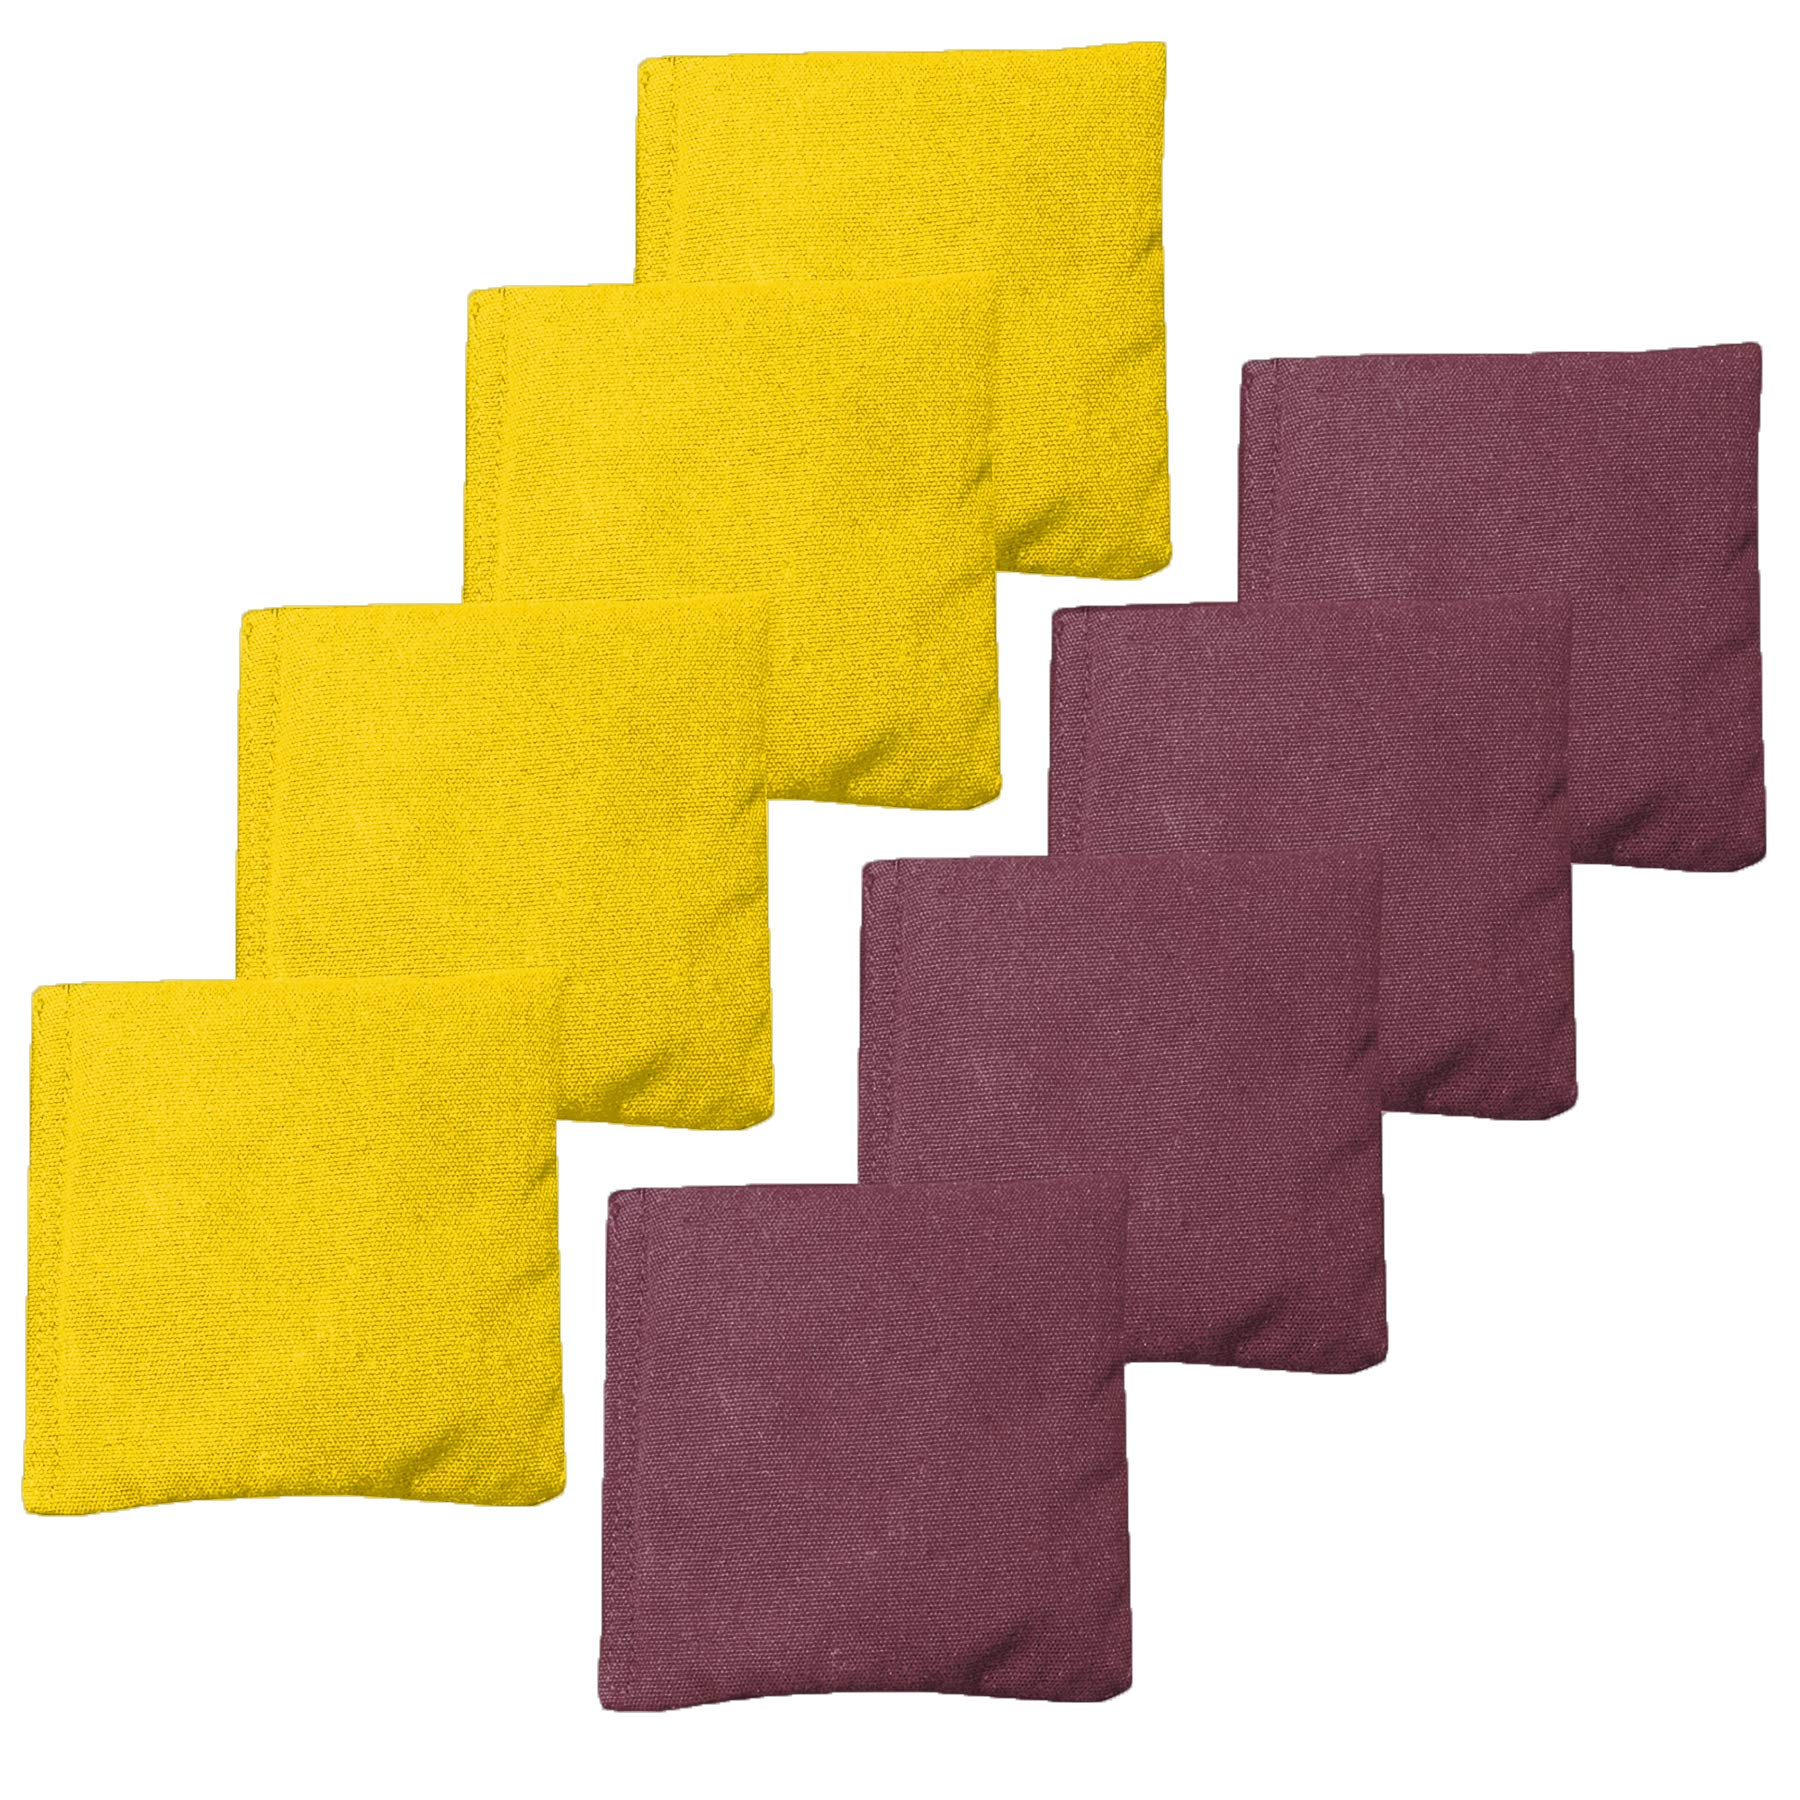 Weather Resistant Cornhole Bean Bags Set of 8 - Regulation Size & Weight - Burgundy & Yellow by Play Platoon